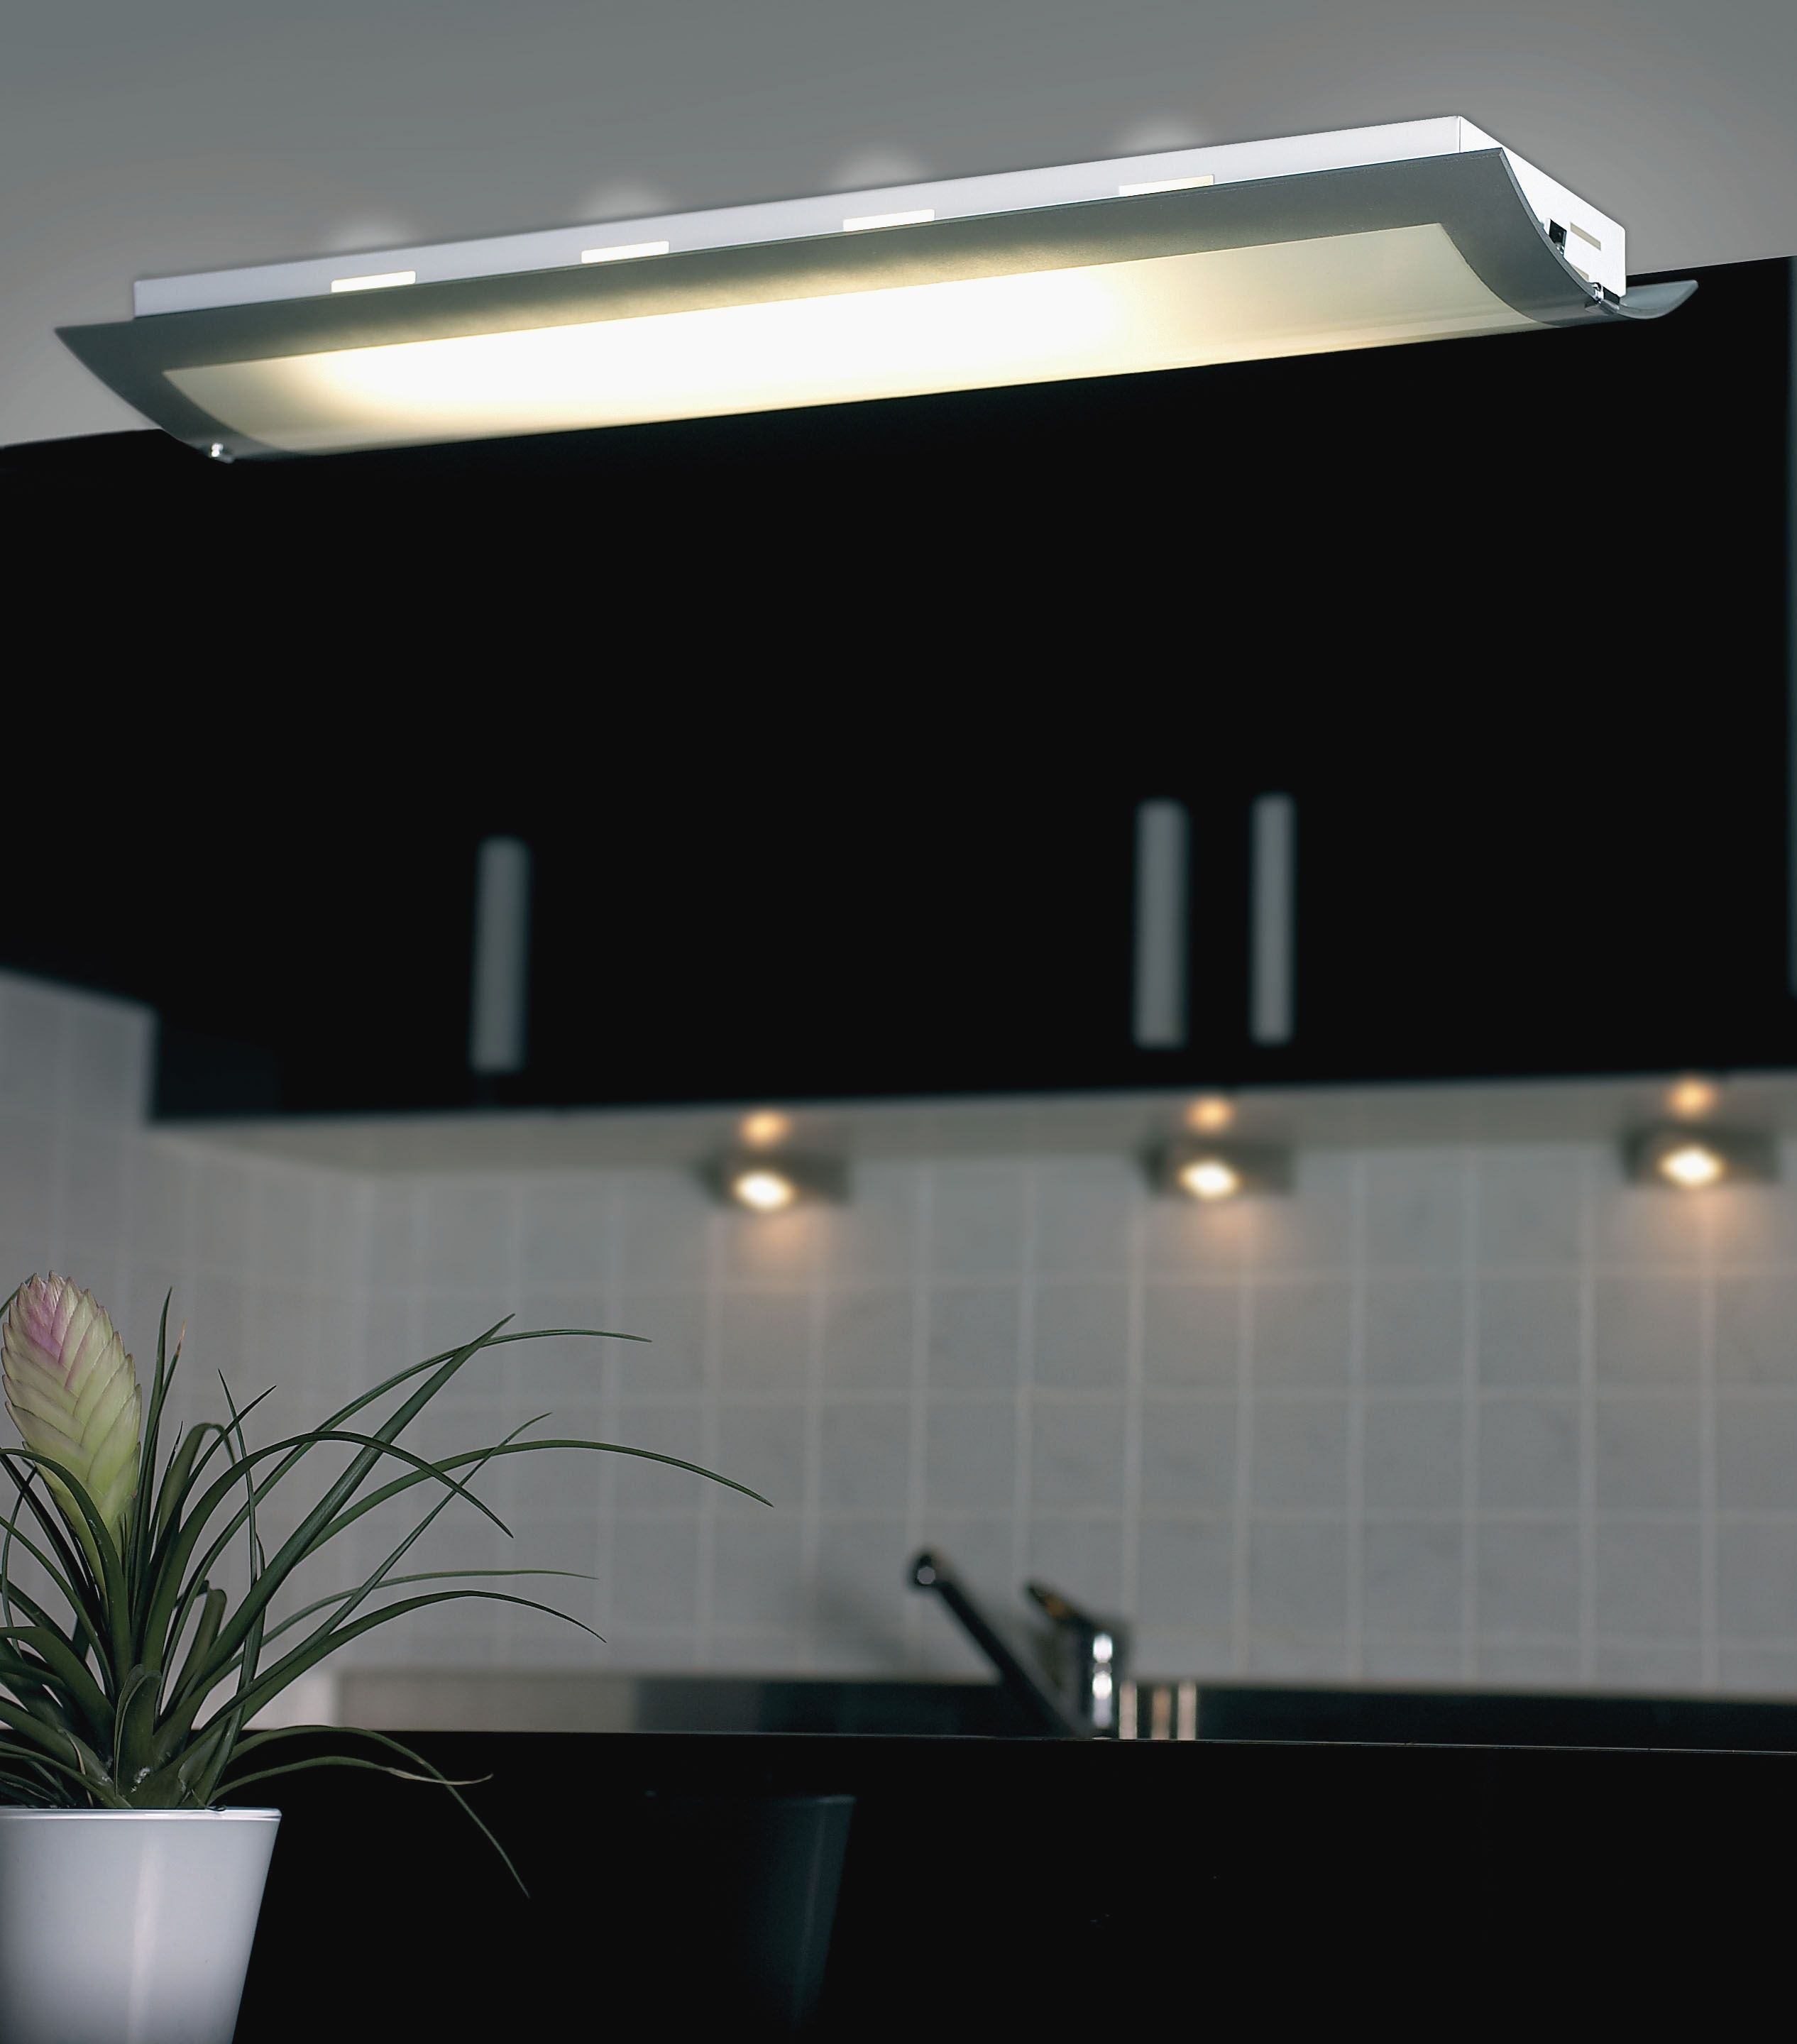 Inspired Photo Of Led Kitchen Ceiling Light Fixture Interior Design Ideas Home Decorating Inspiration Moercar Kitchen Ceiling Lights Kitchen Lighting Fixtures Ceiling Kitchen Led Lighting Kitchen lighting fixtures led